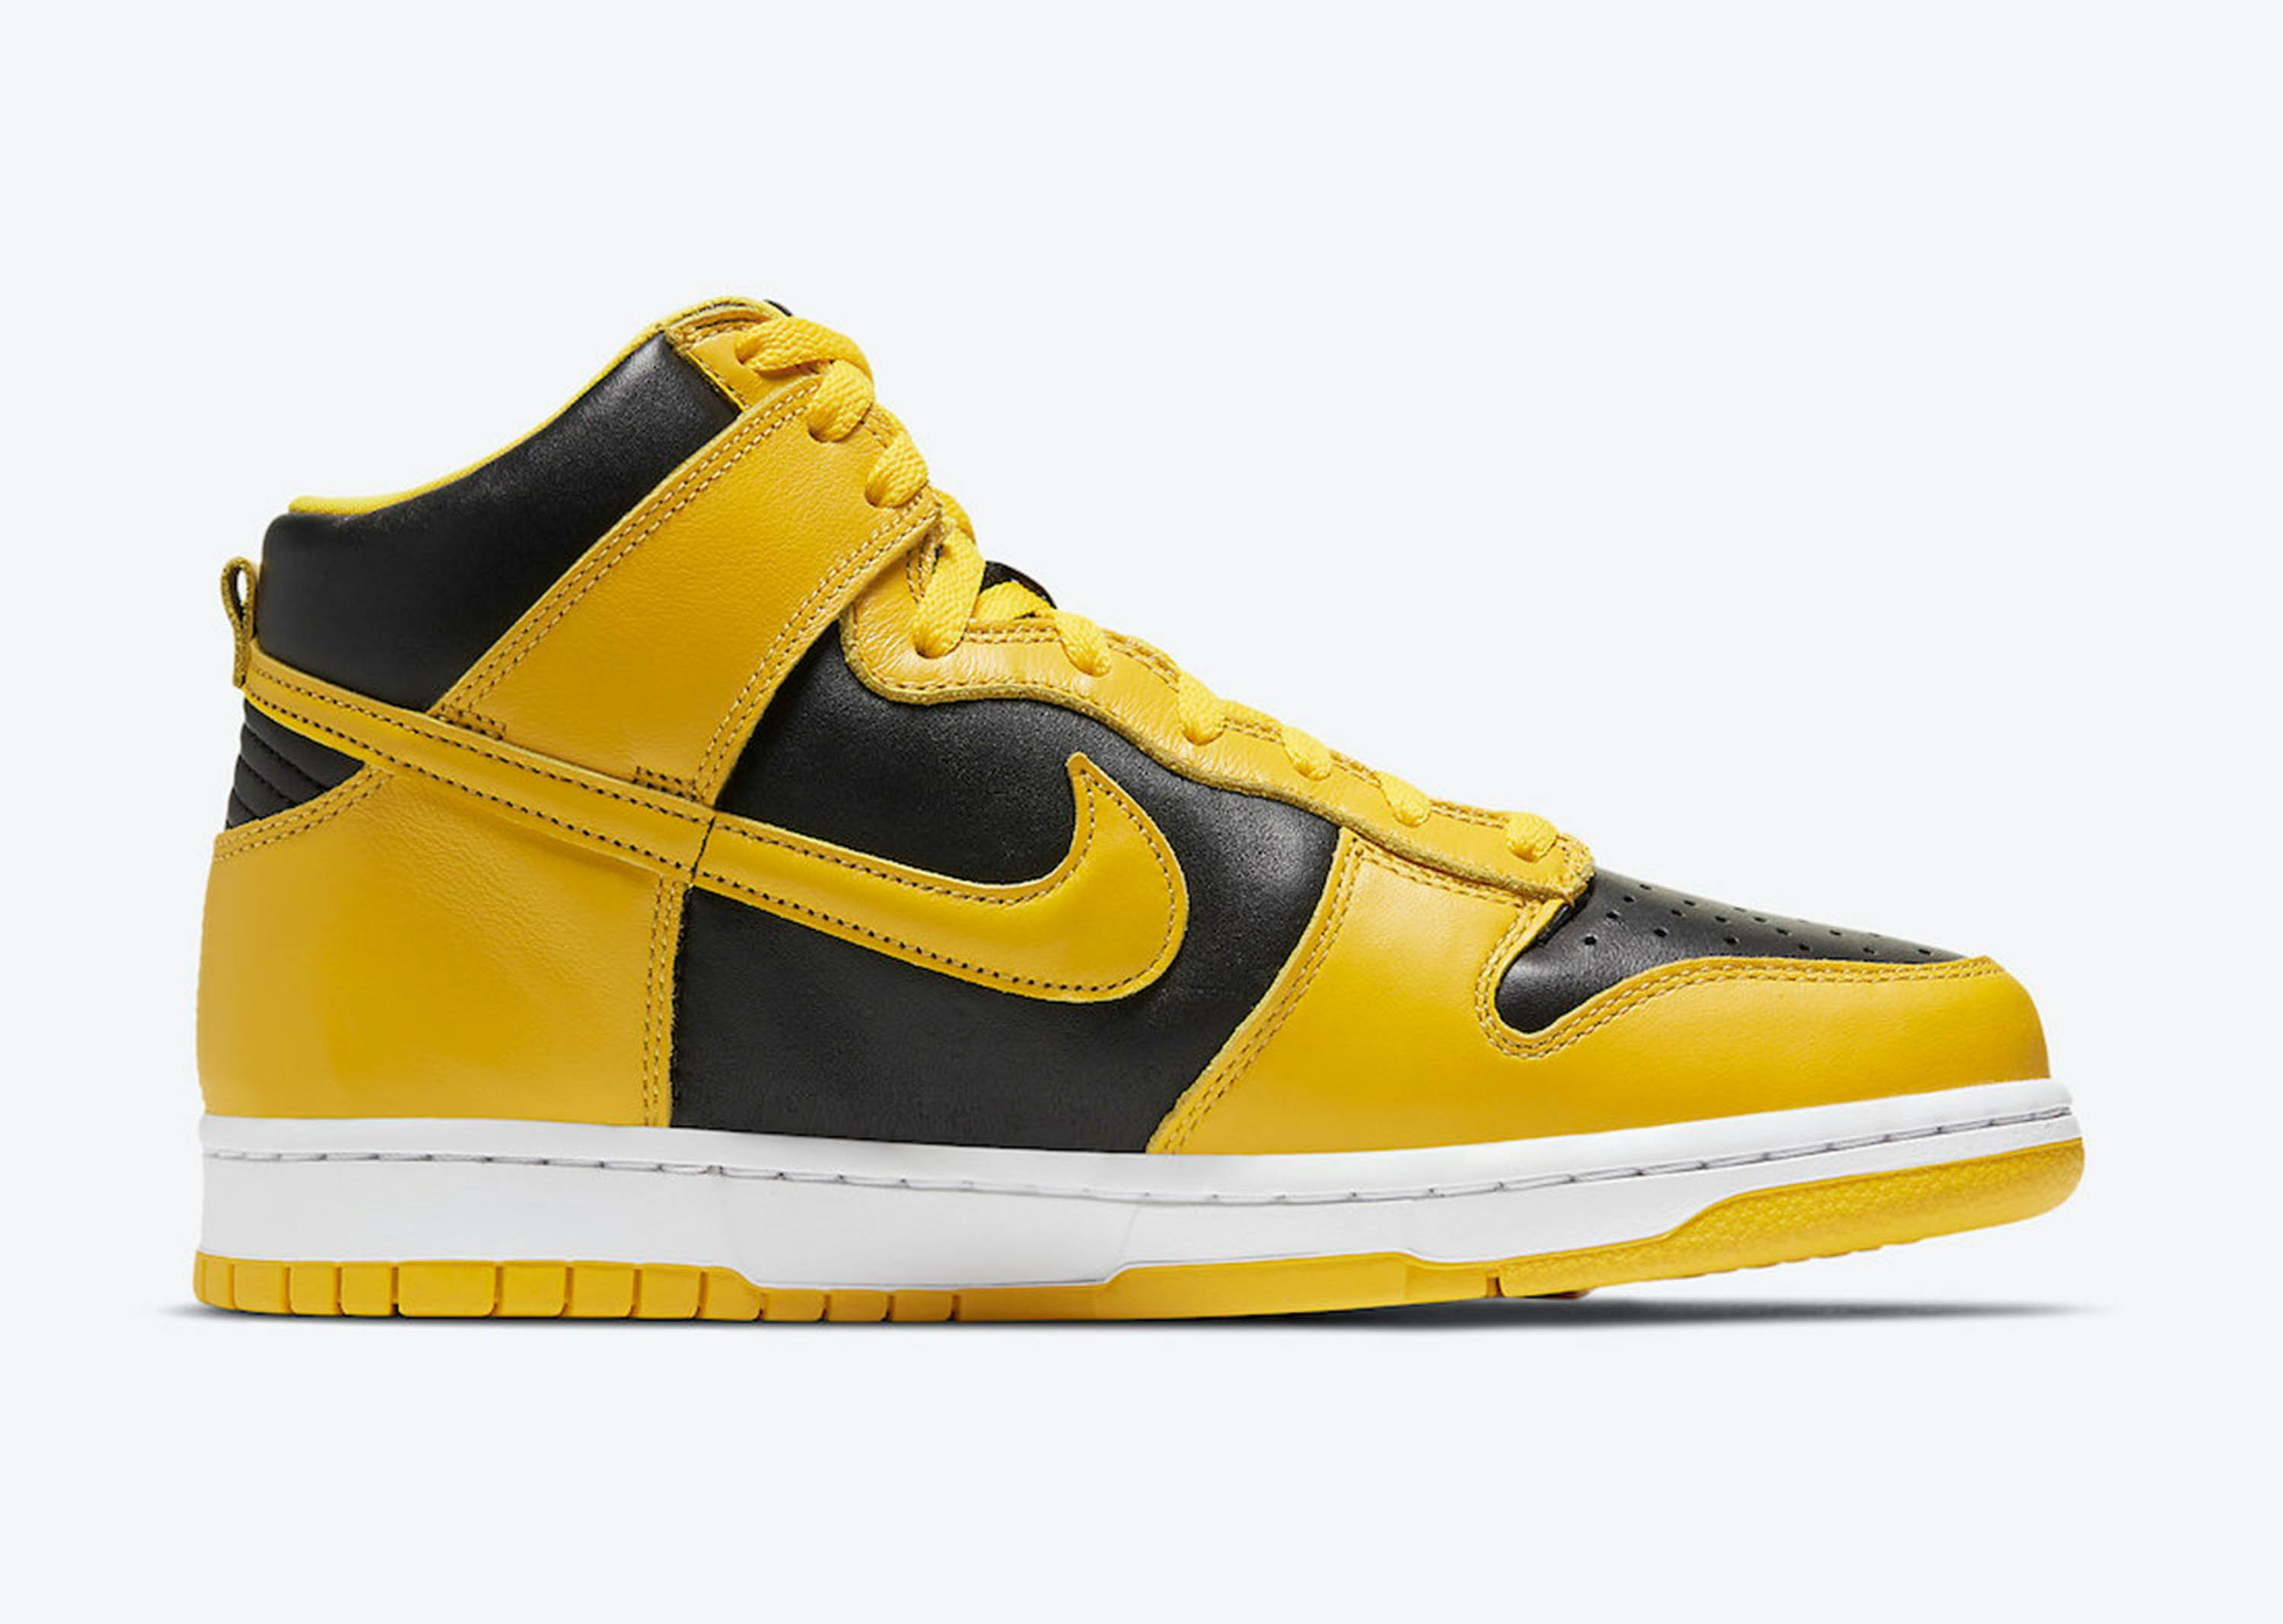 Dunk_High_Varsity_Maize_0002_Nike-Dunk-High-Varsity-Maize-CZ8149-002-Release-Date-Price-2